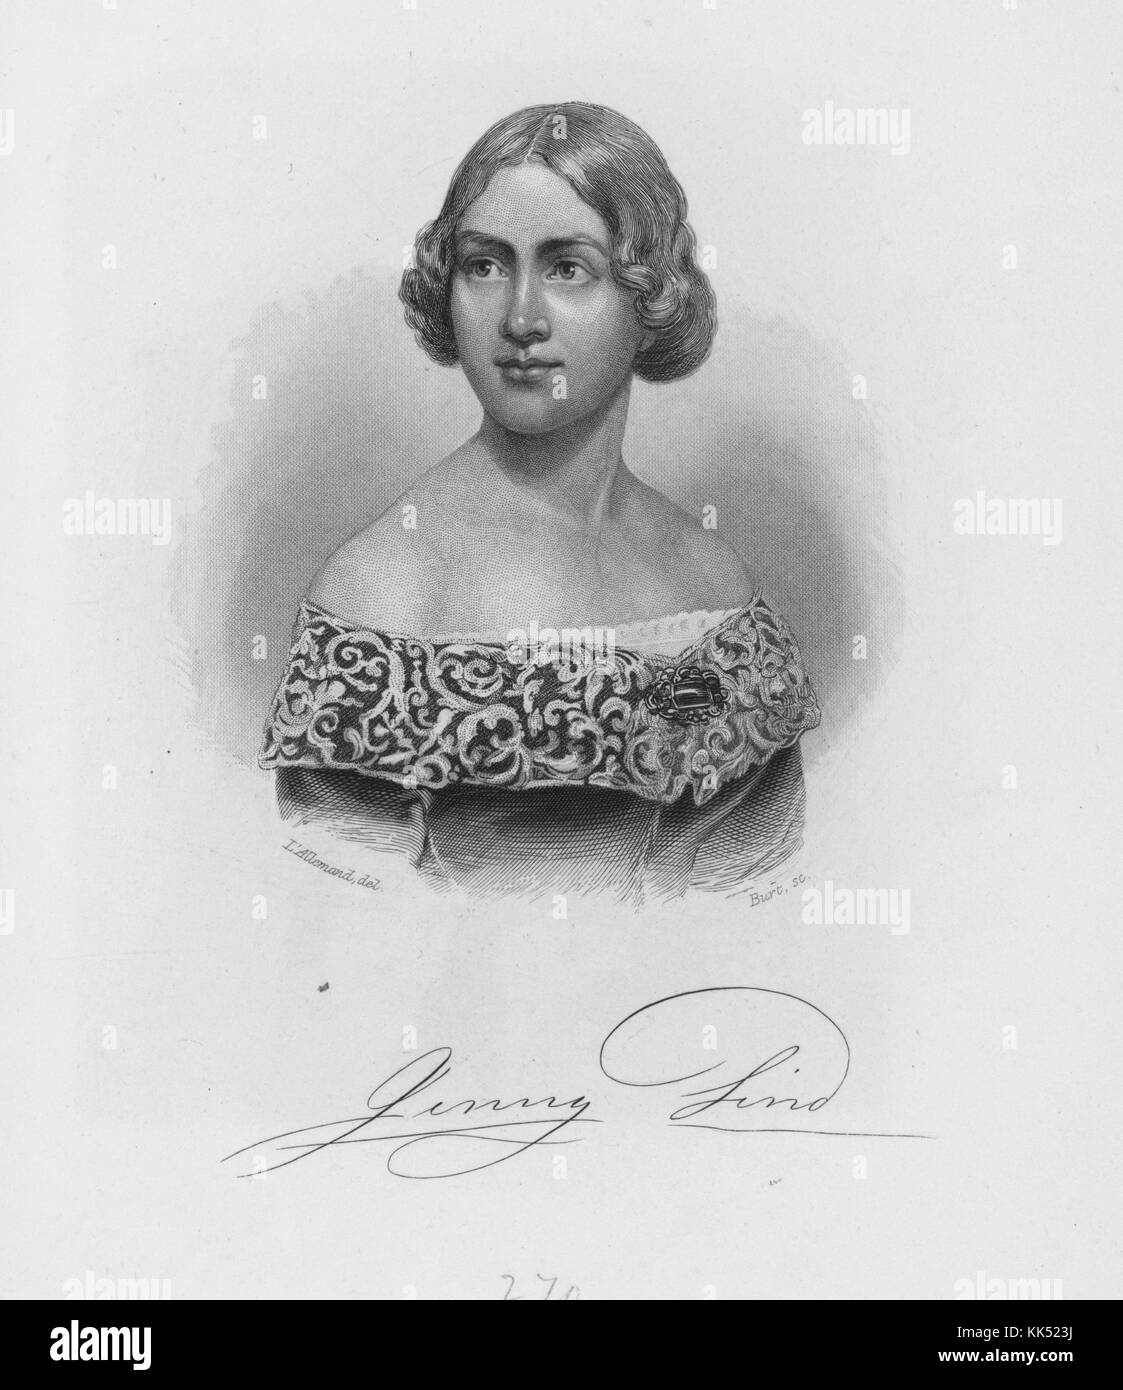 An engraving from a portrait of Jenny Lind, she was a Swedish opera singer who was nicknamed 'The Swedish Nightingale', - Stock Image